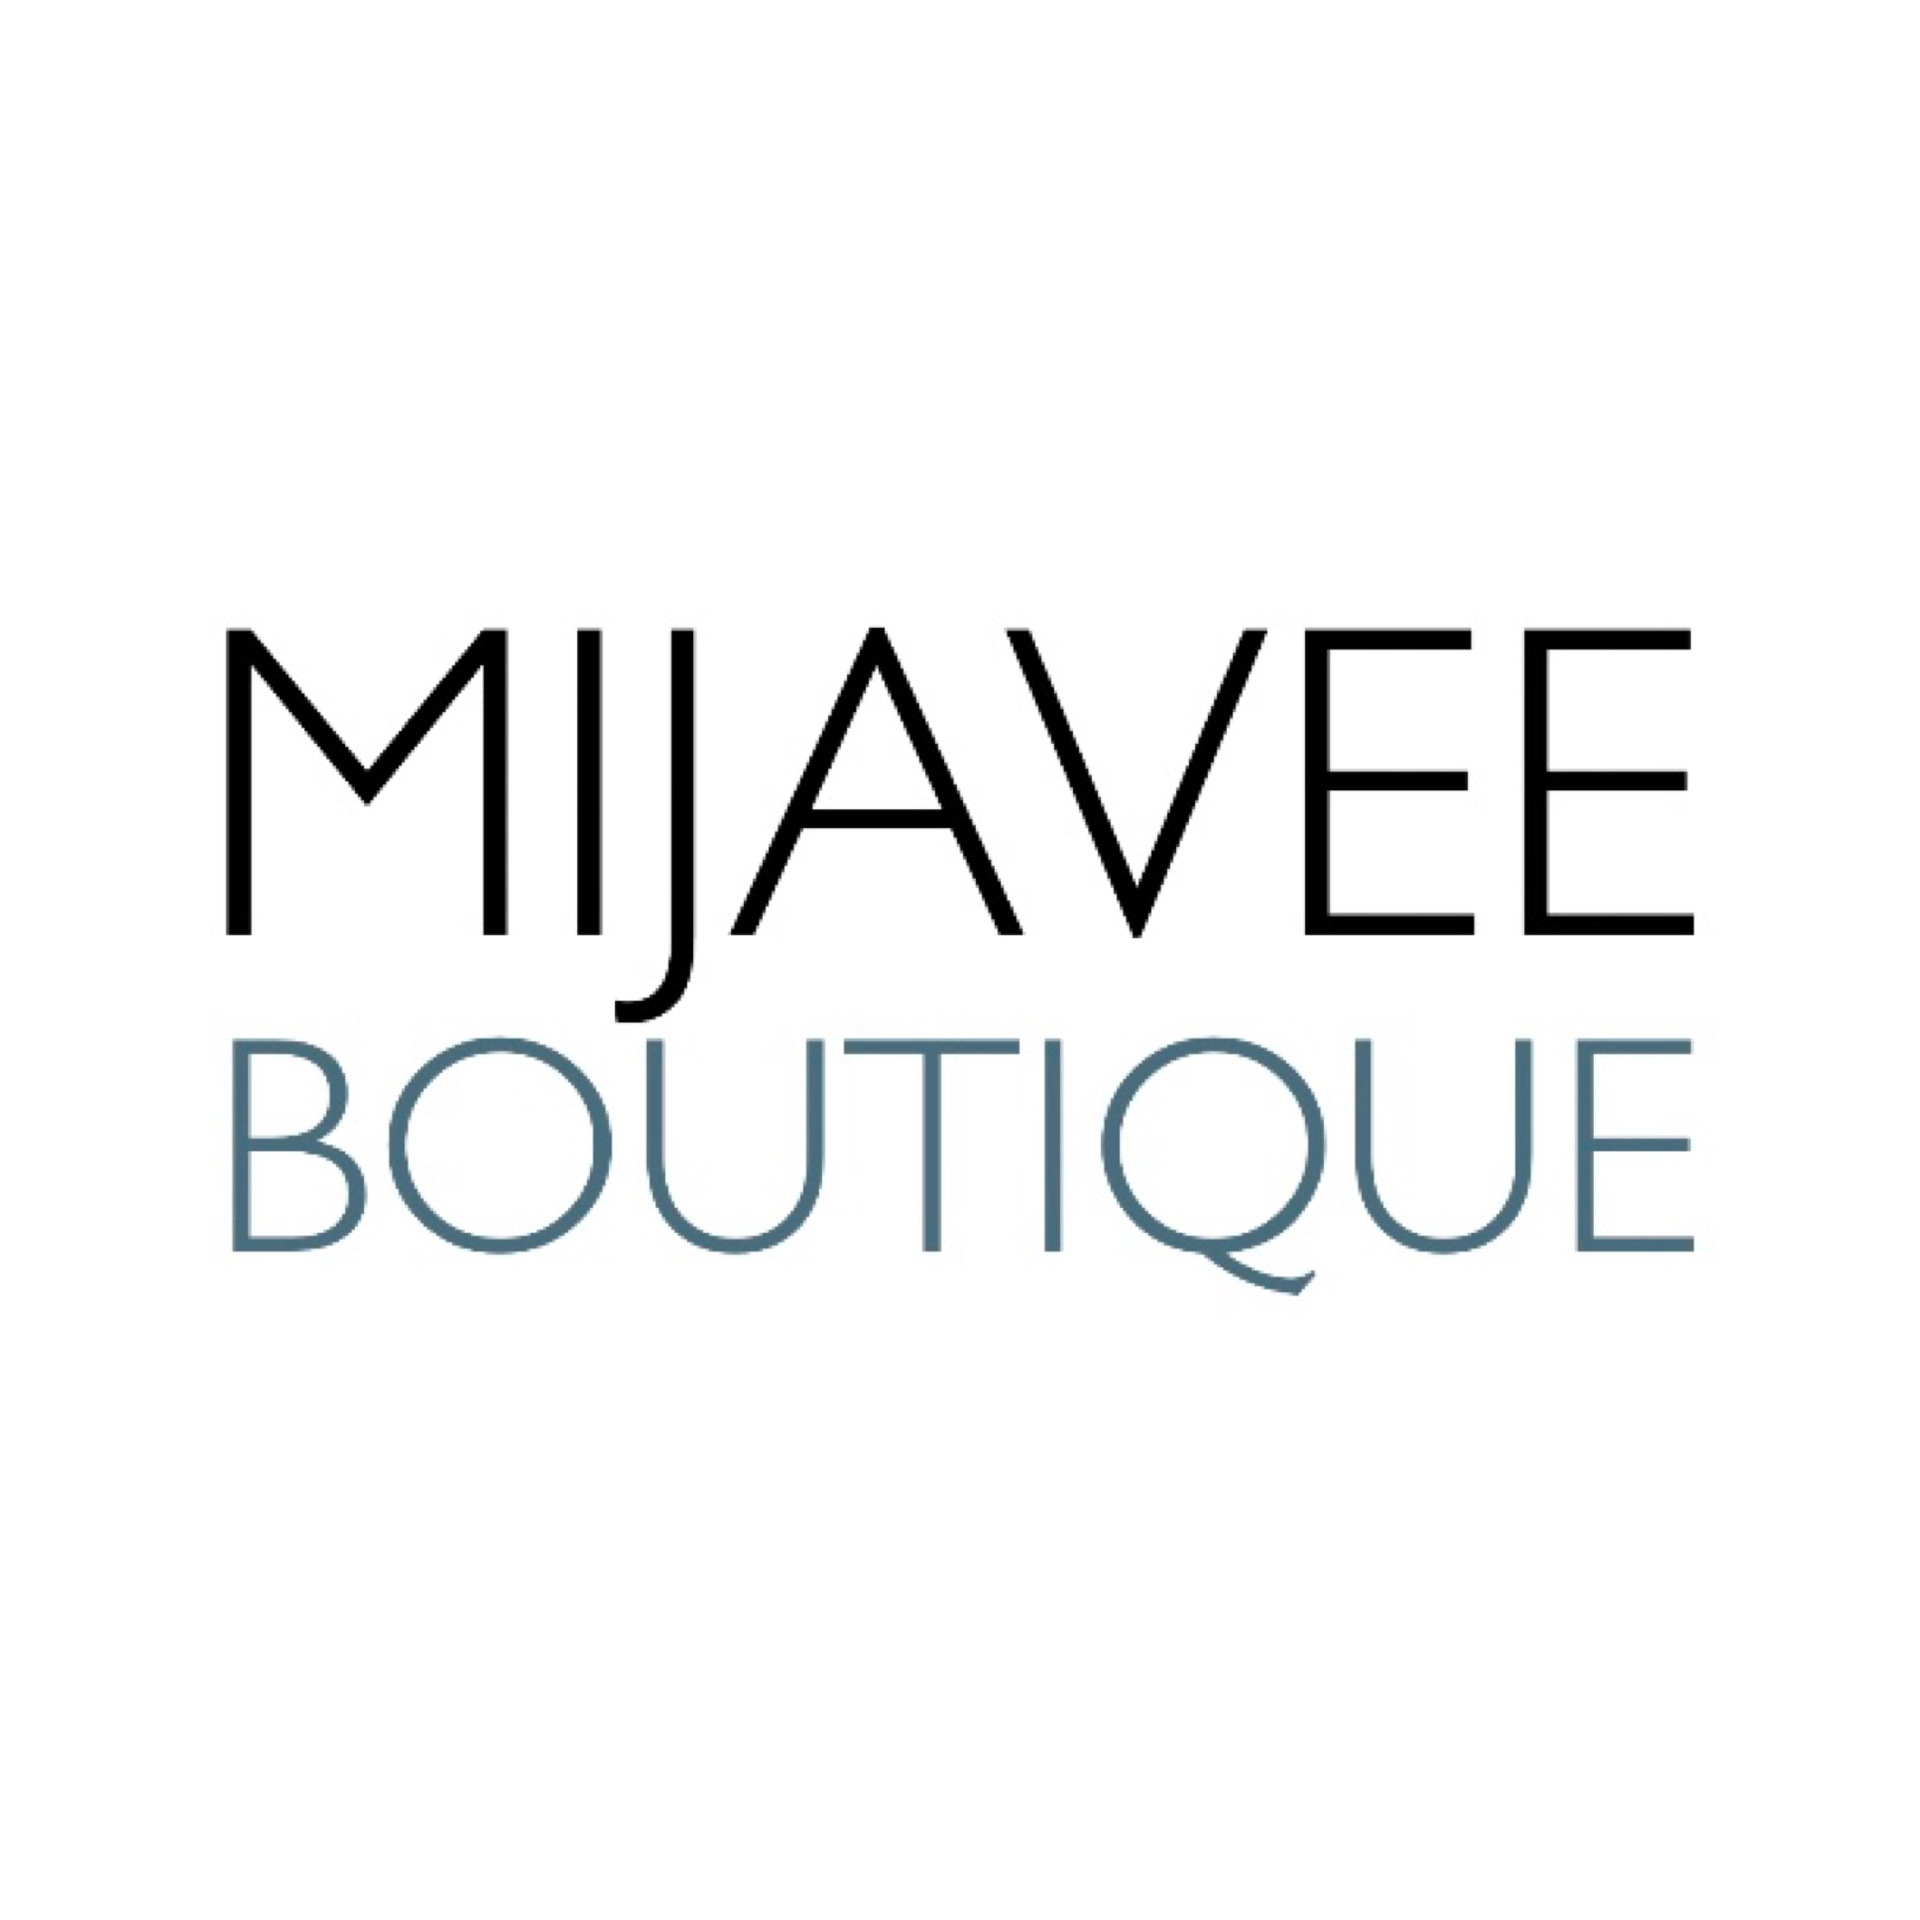 Mijavee Boutique